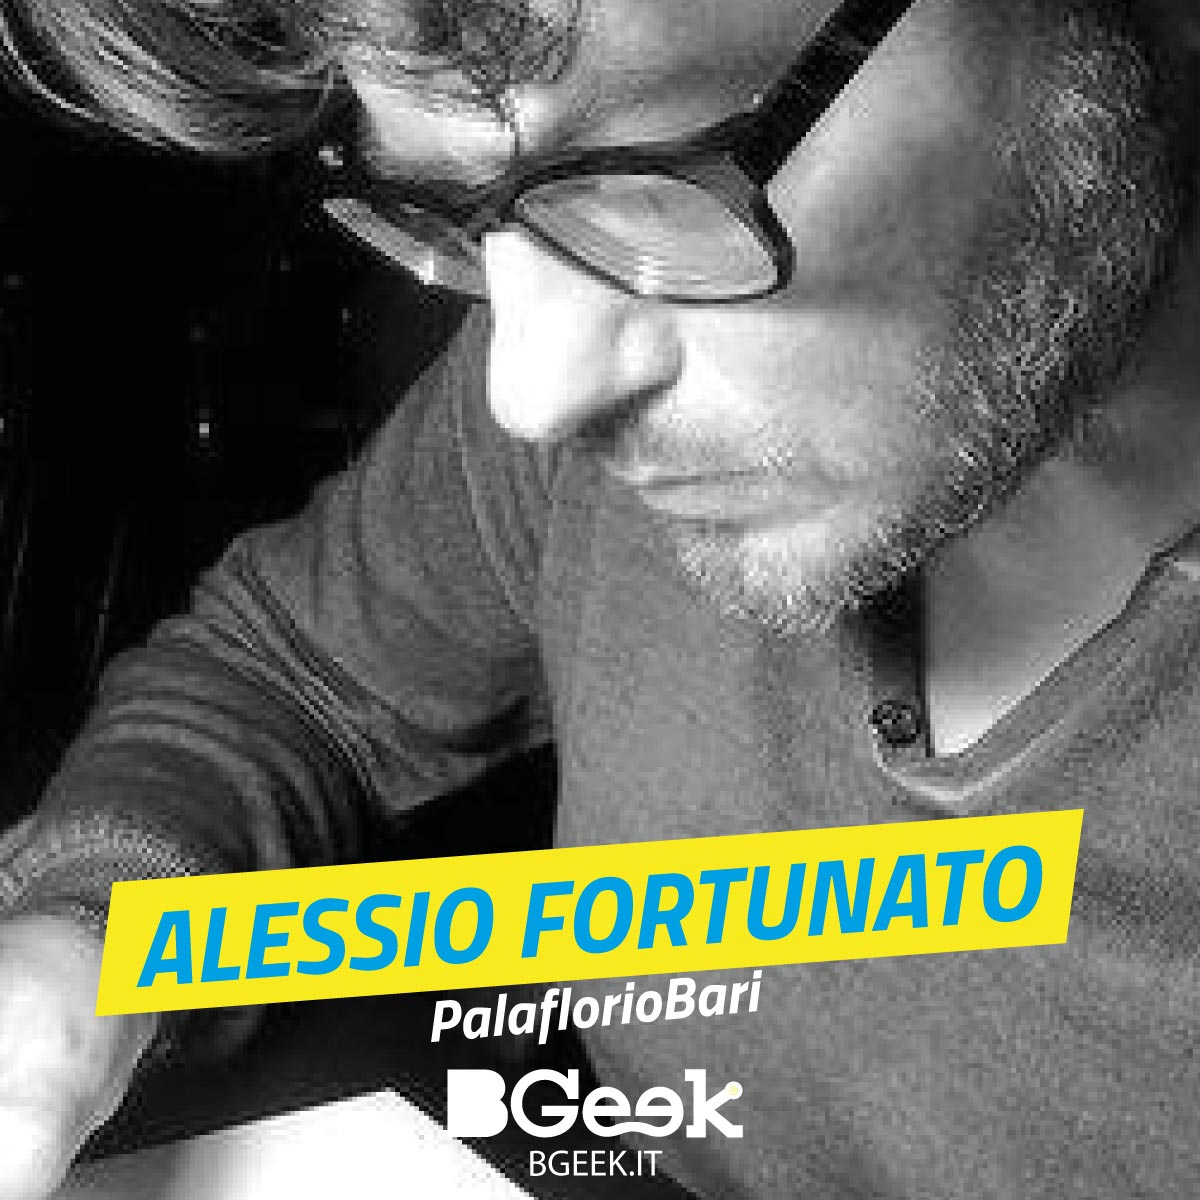 Bgeek_website_ospiti_1200x1200_Alessio-Fortunato